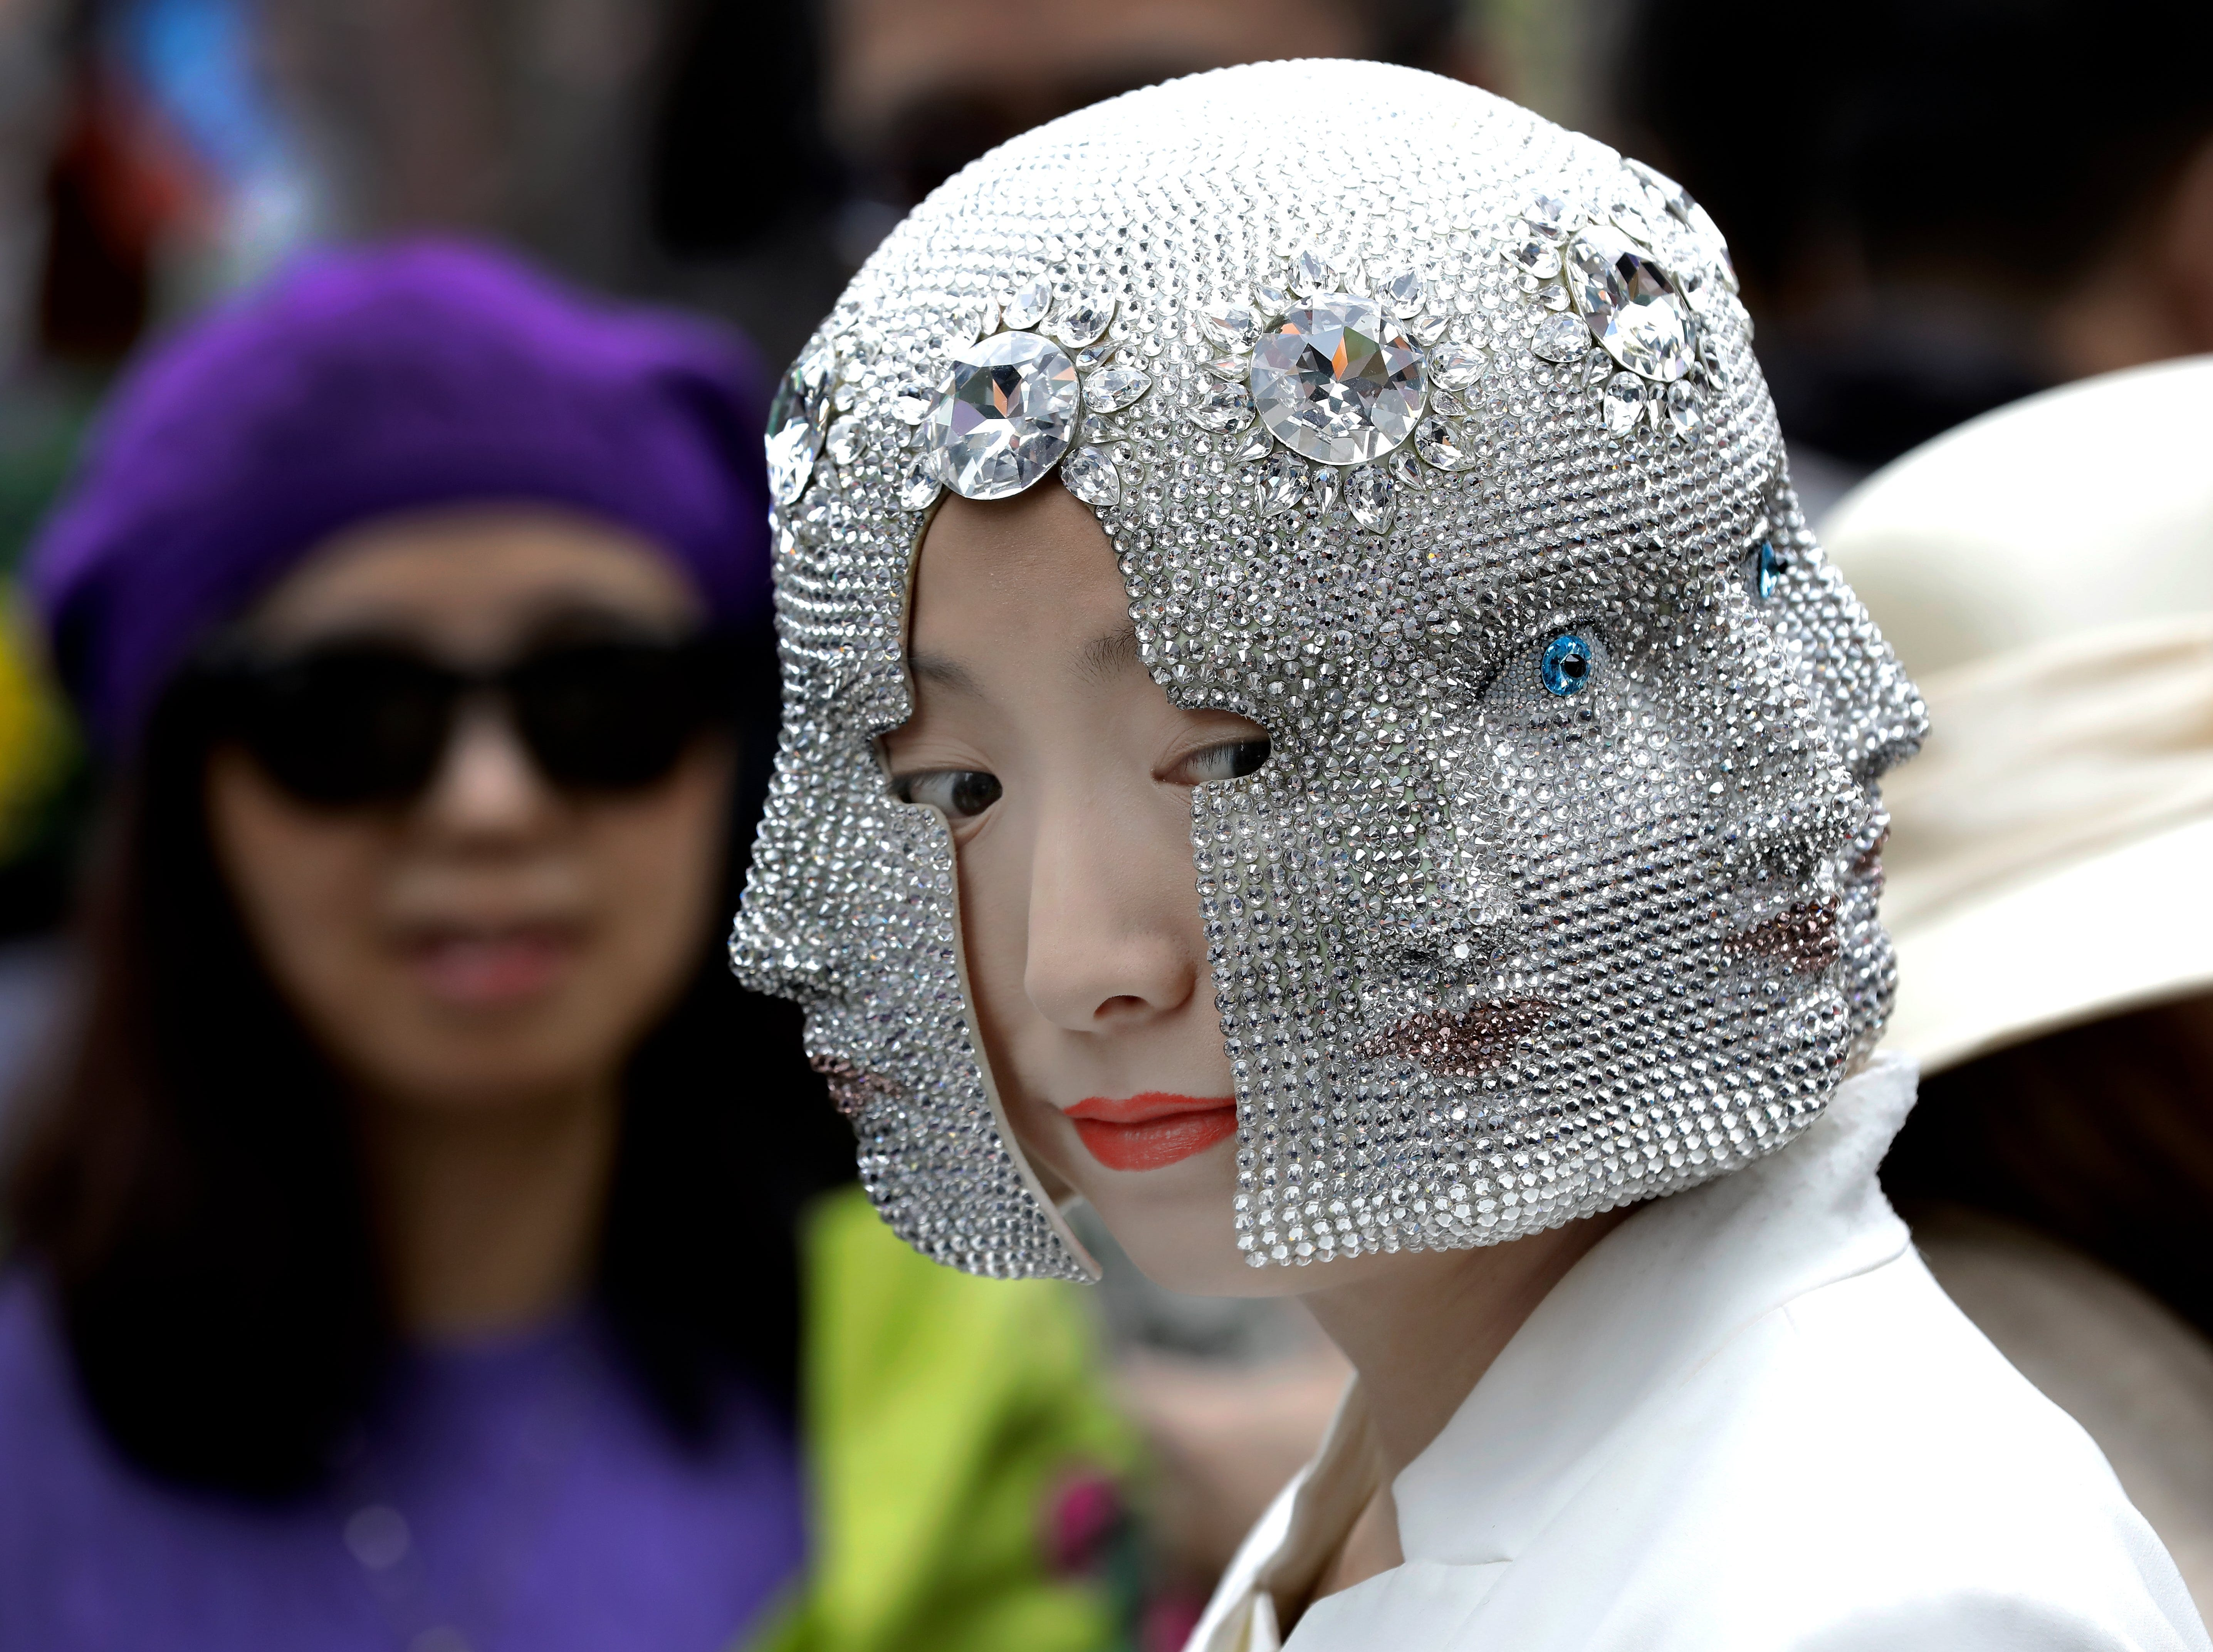 April 1, 2018: A woman wears a hat of faces at the Easter Bonnet Parade outside St. Patrick's Cathedral on Easter Sunday in New York City.